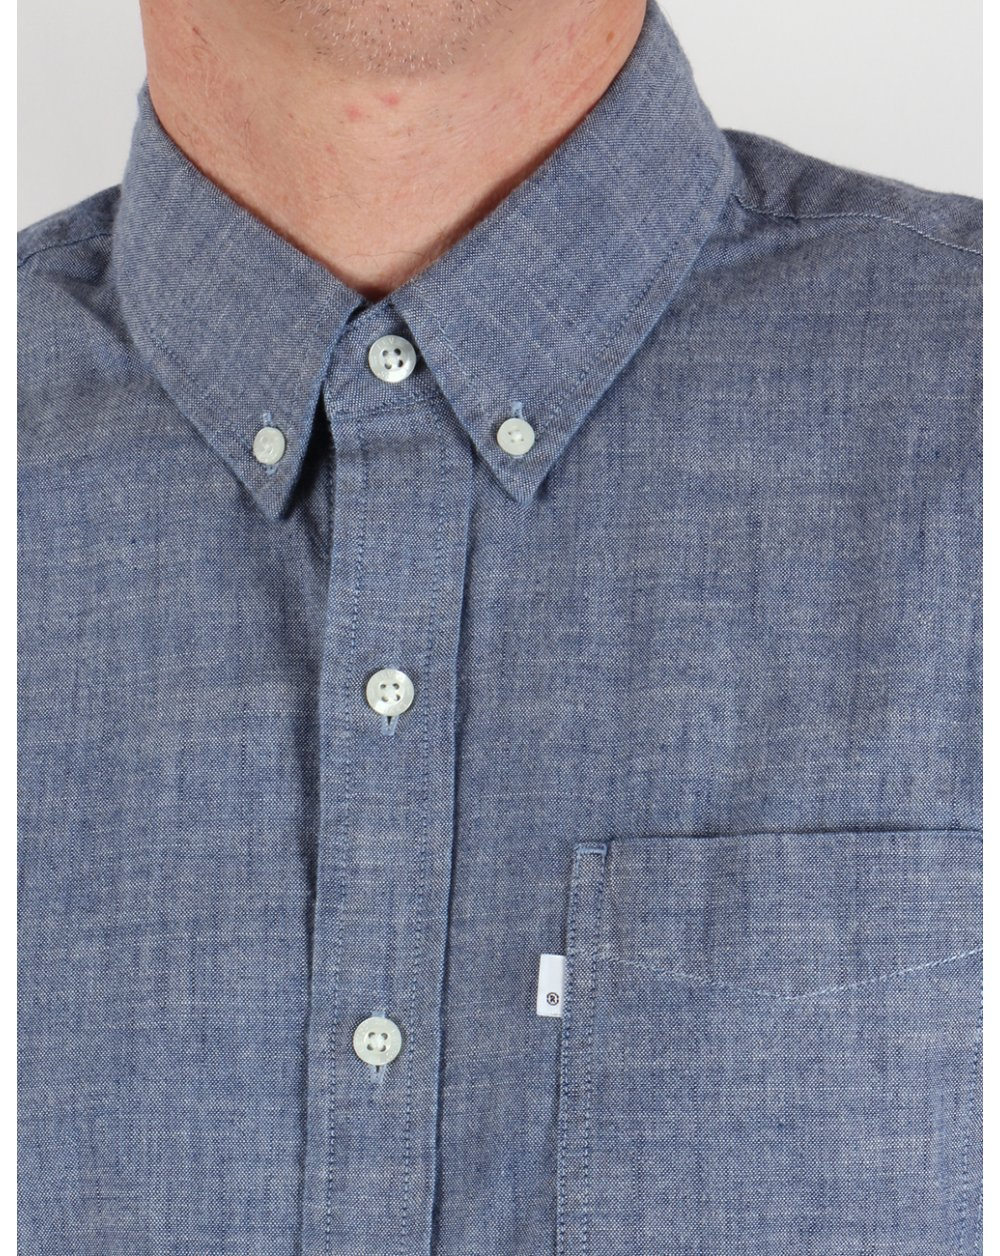 levis classic one pocket shirt indigo mens retro